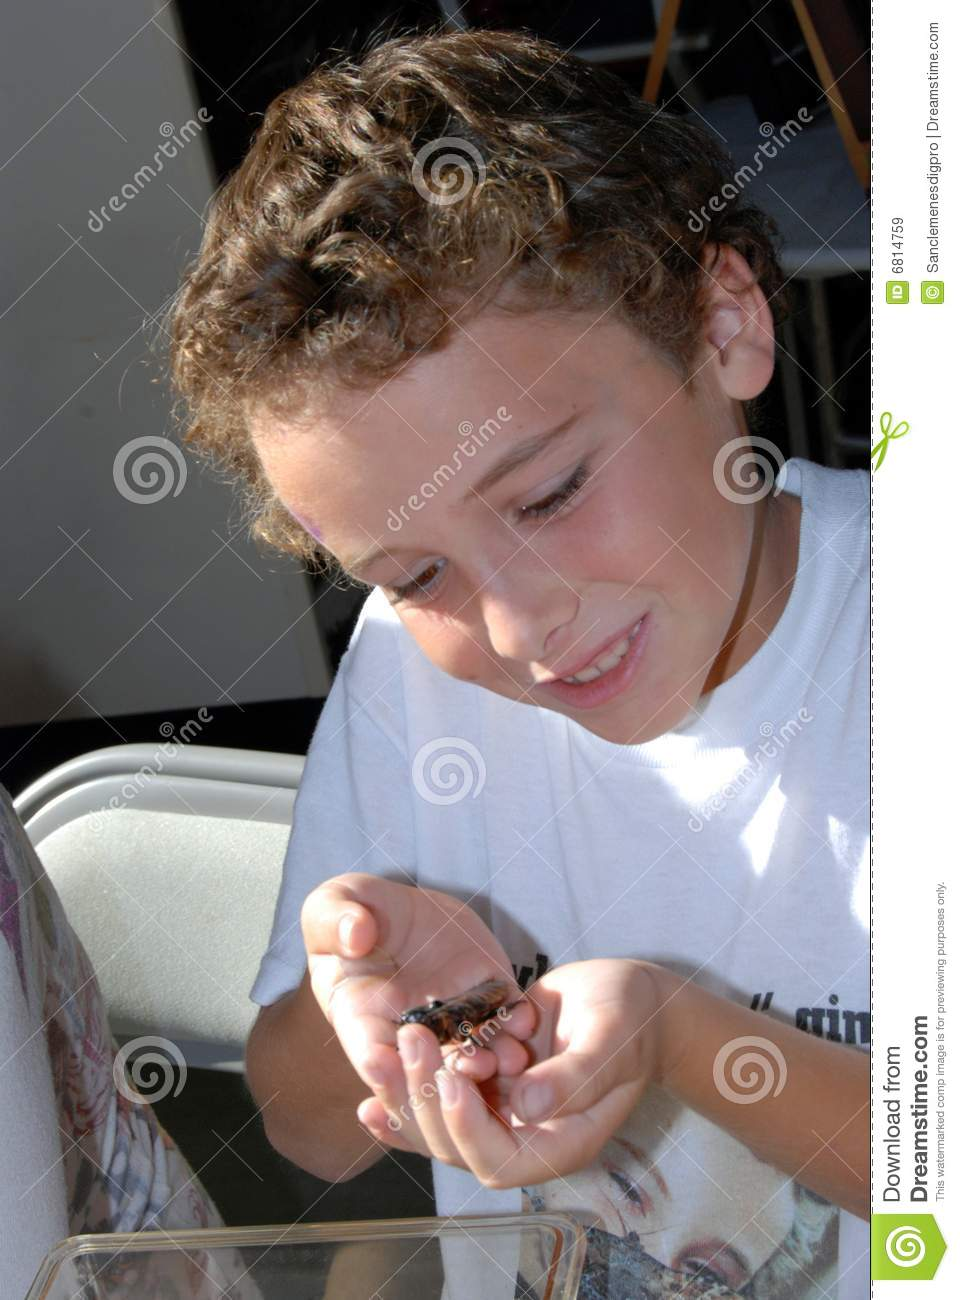 Hissing cockroach in hand